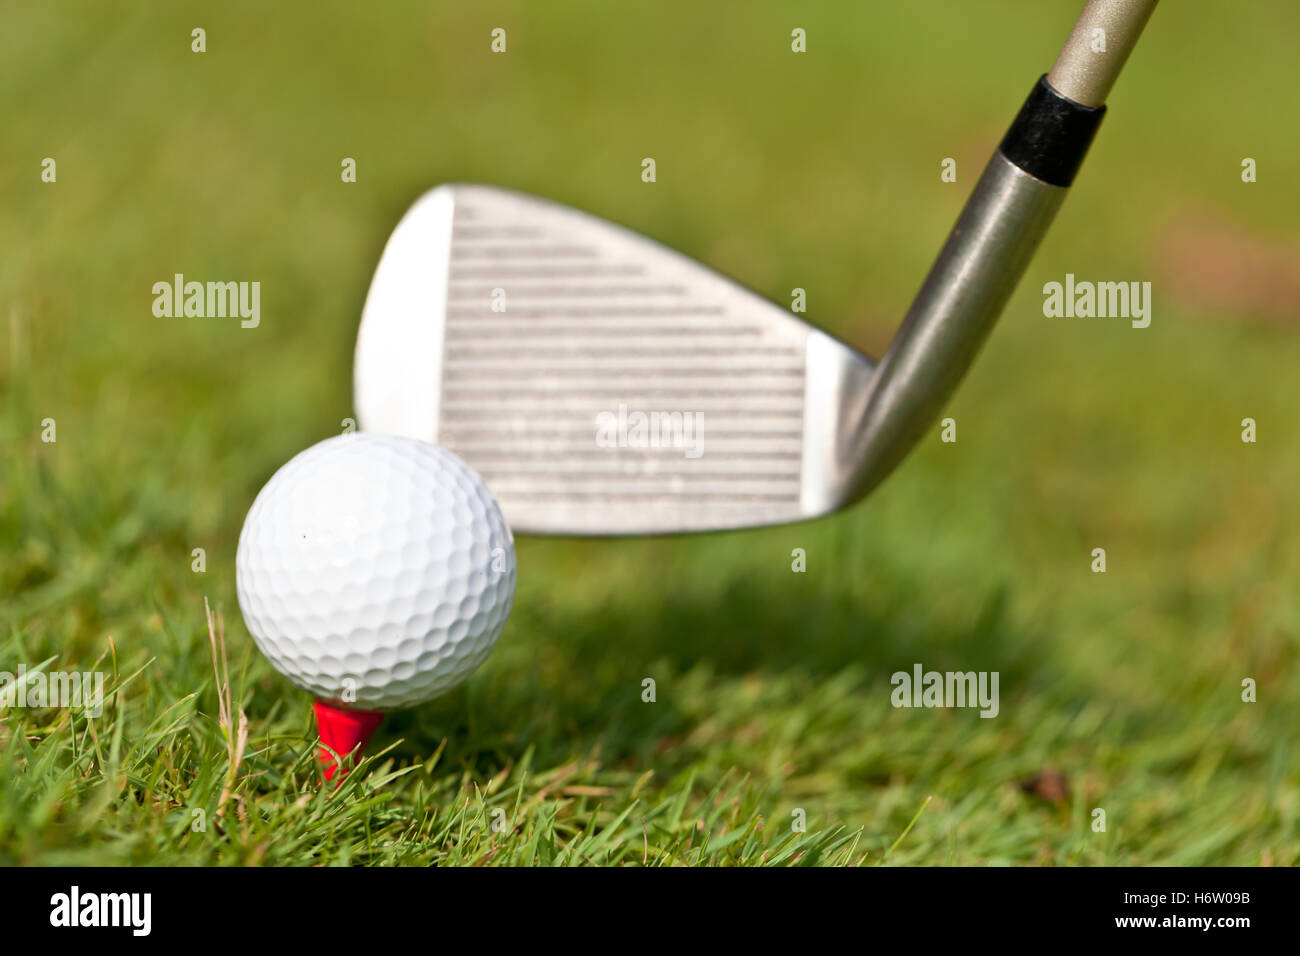 golf ball and golf club tee closeup on green lawn - Stock Image